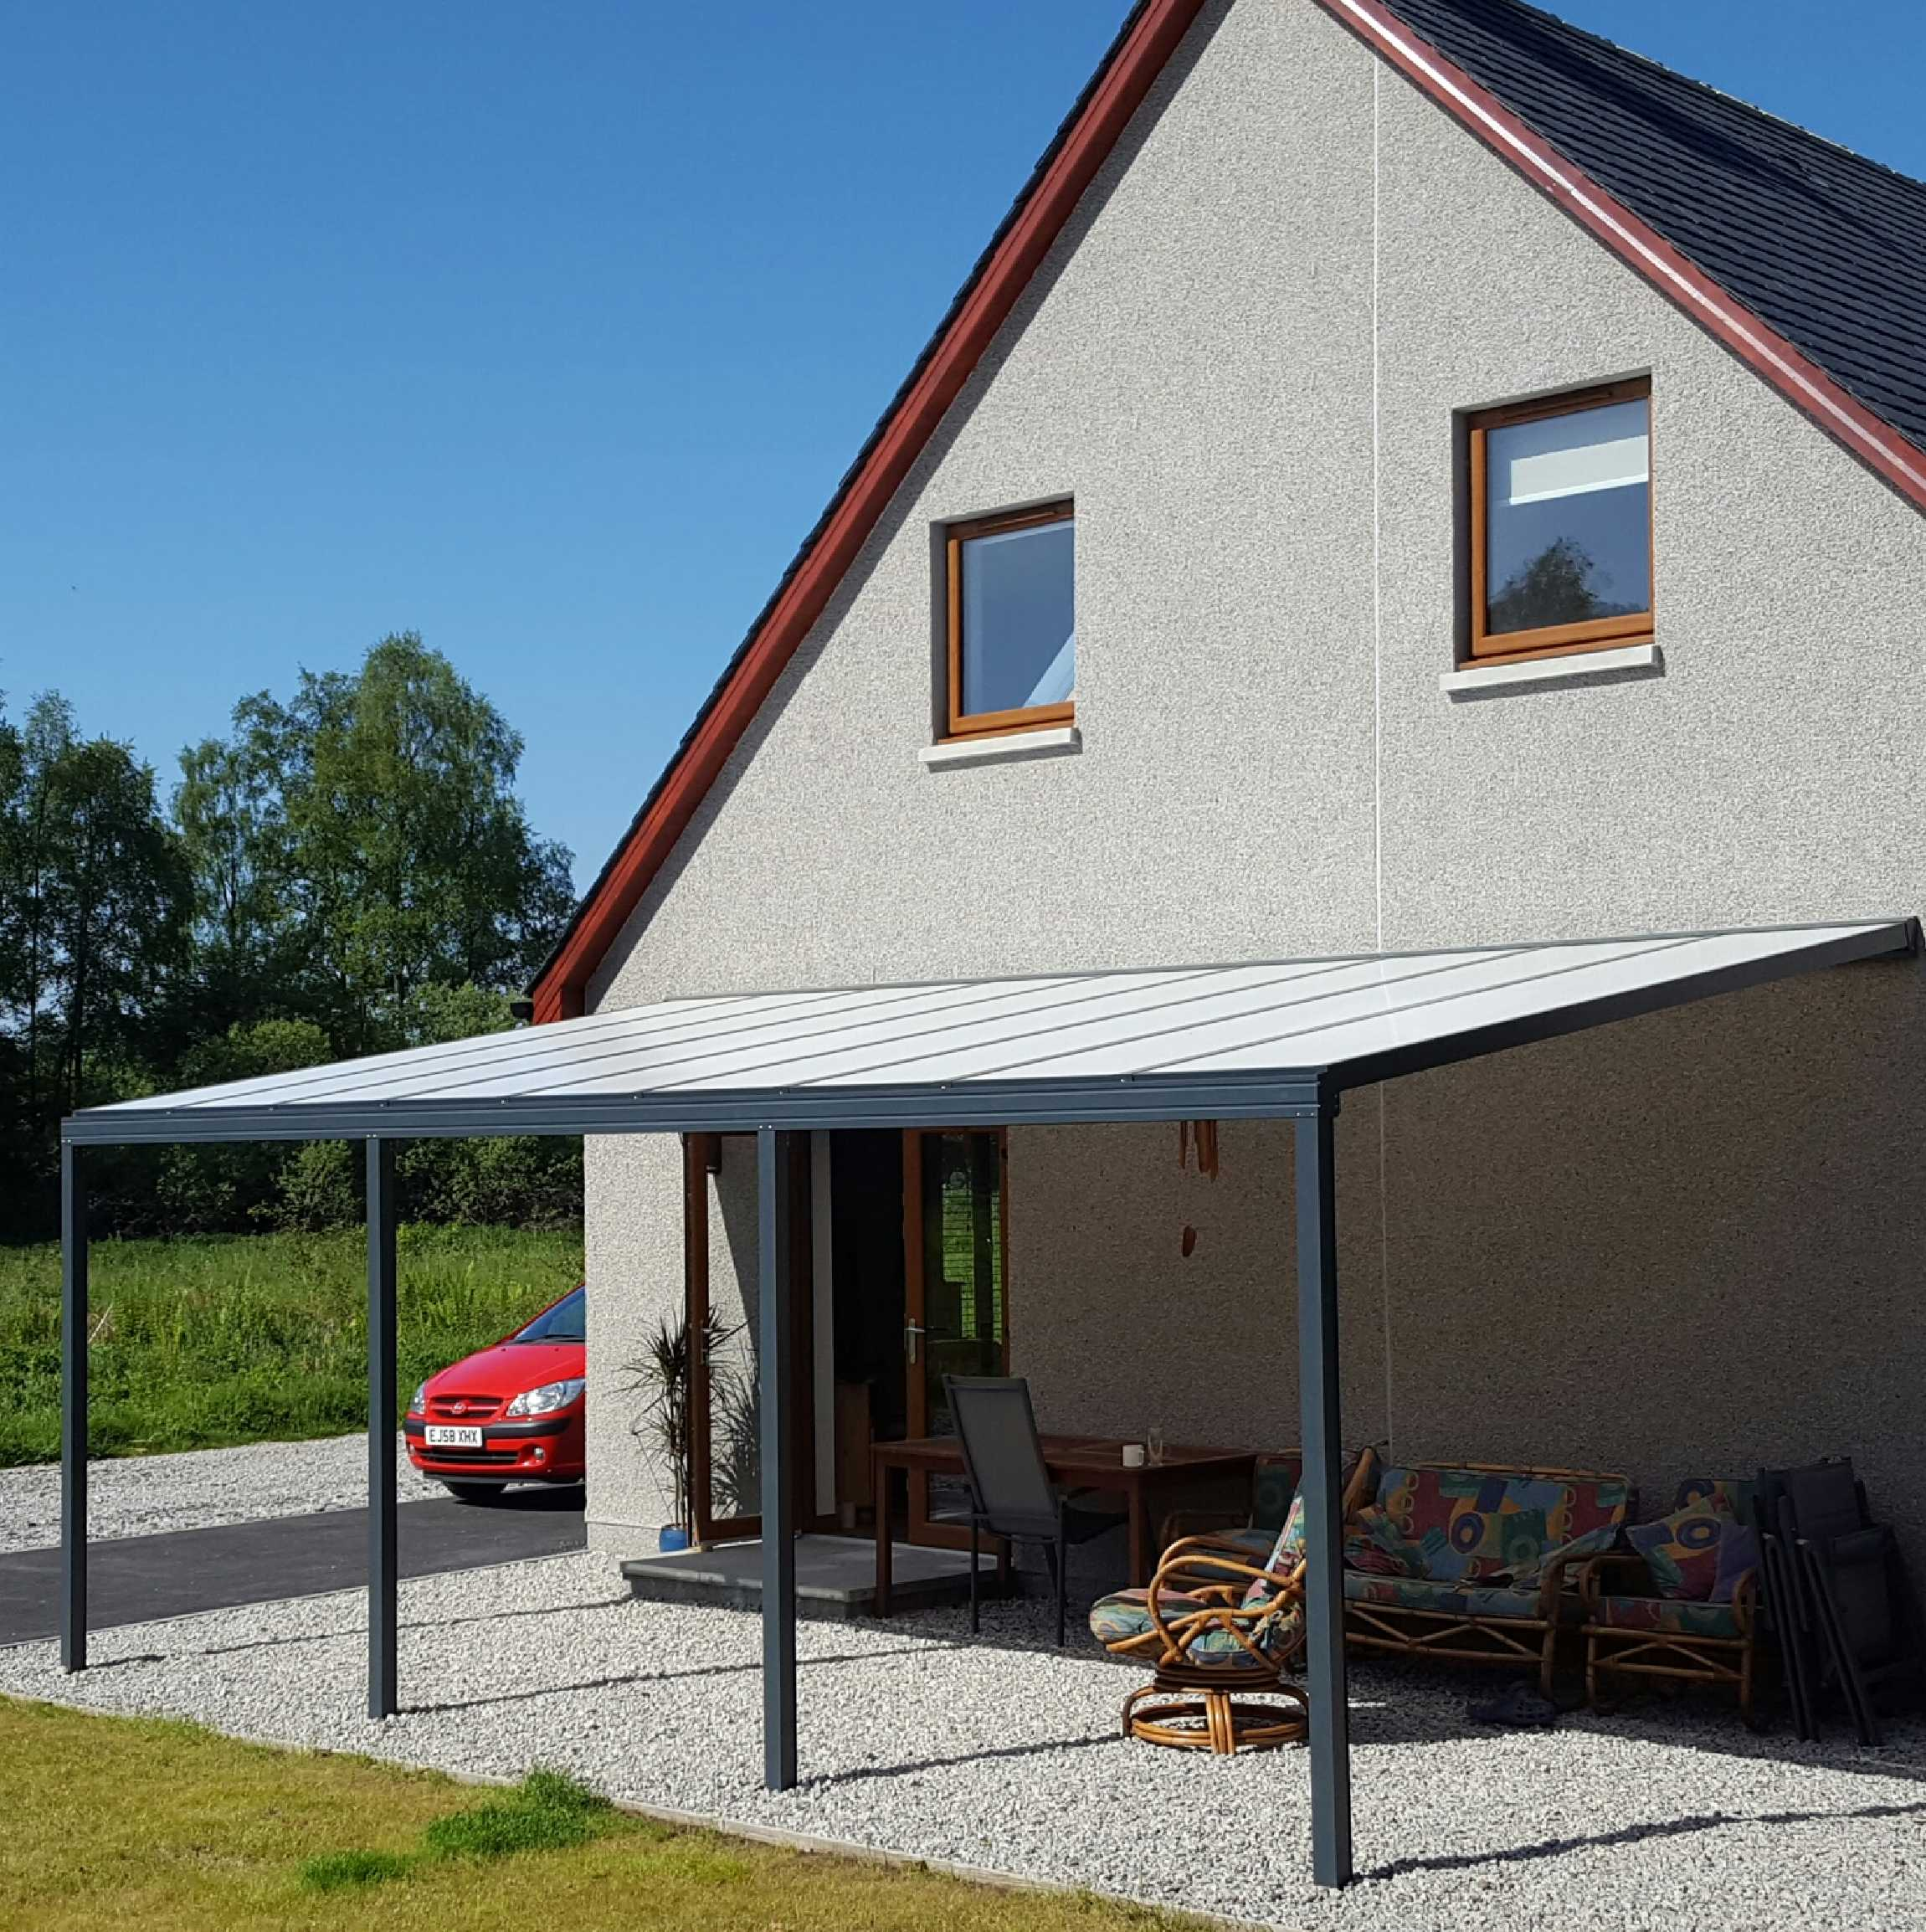 Great selection of Omega Smart Lean-To Canopy, Anthracite Grey, 16mm Polycarbonate Glazing - 7.8m (W) x 3.5m (P), (4) Supporting Posts